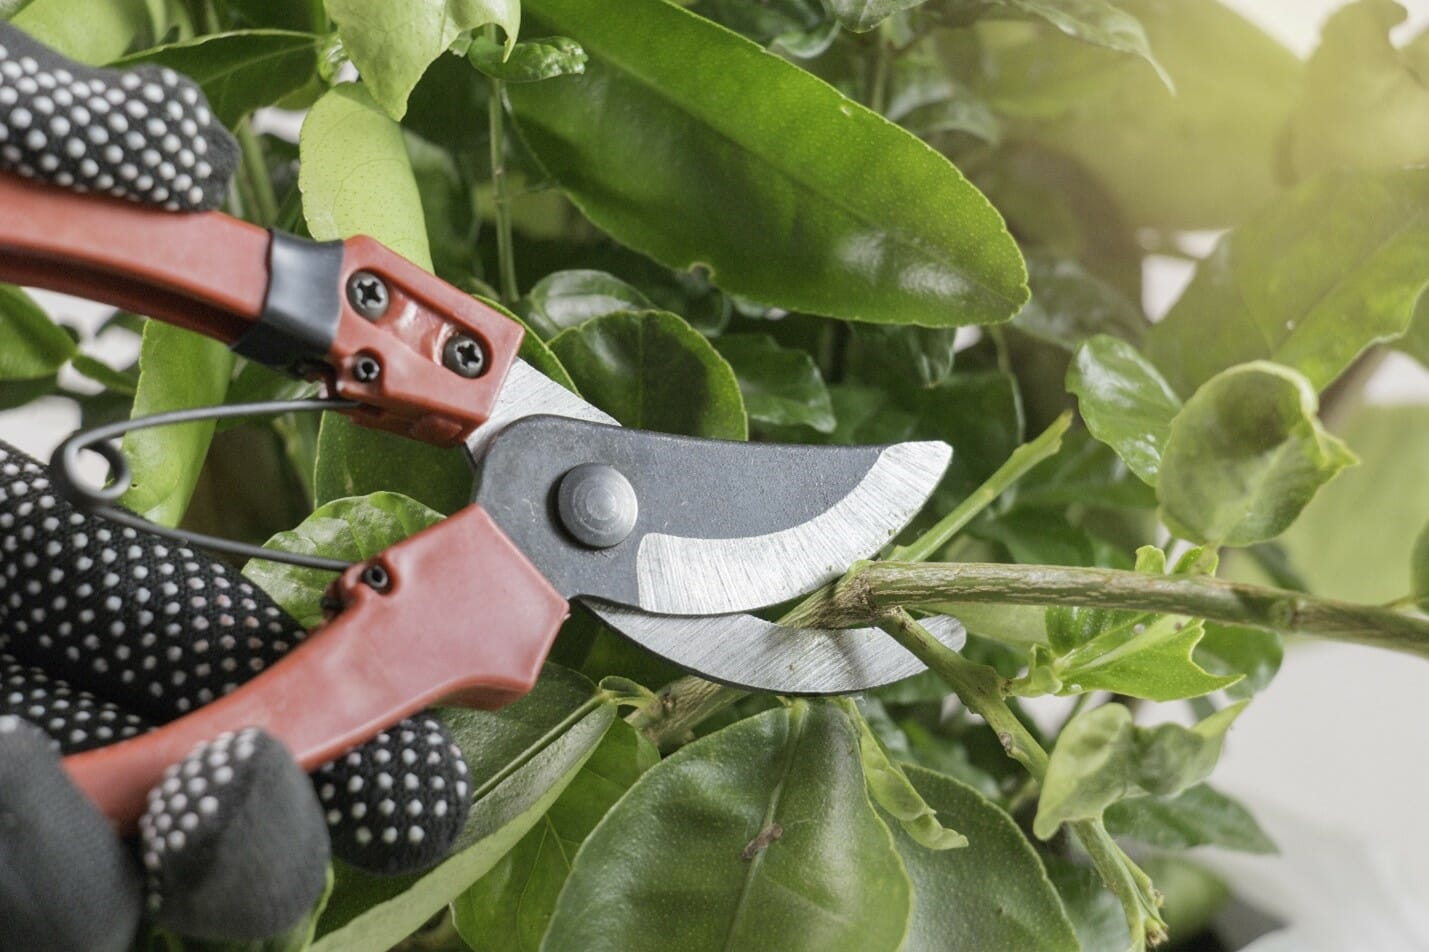 how to lubricate pruning shears image